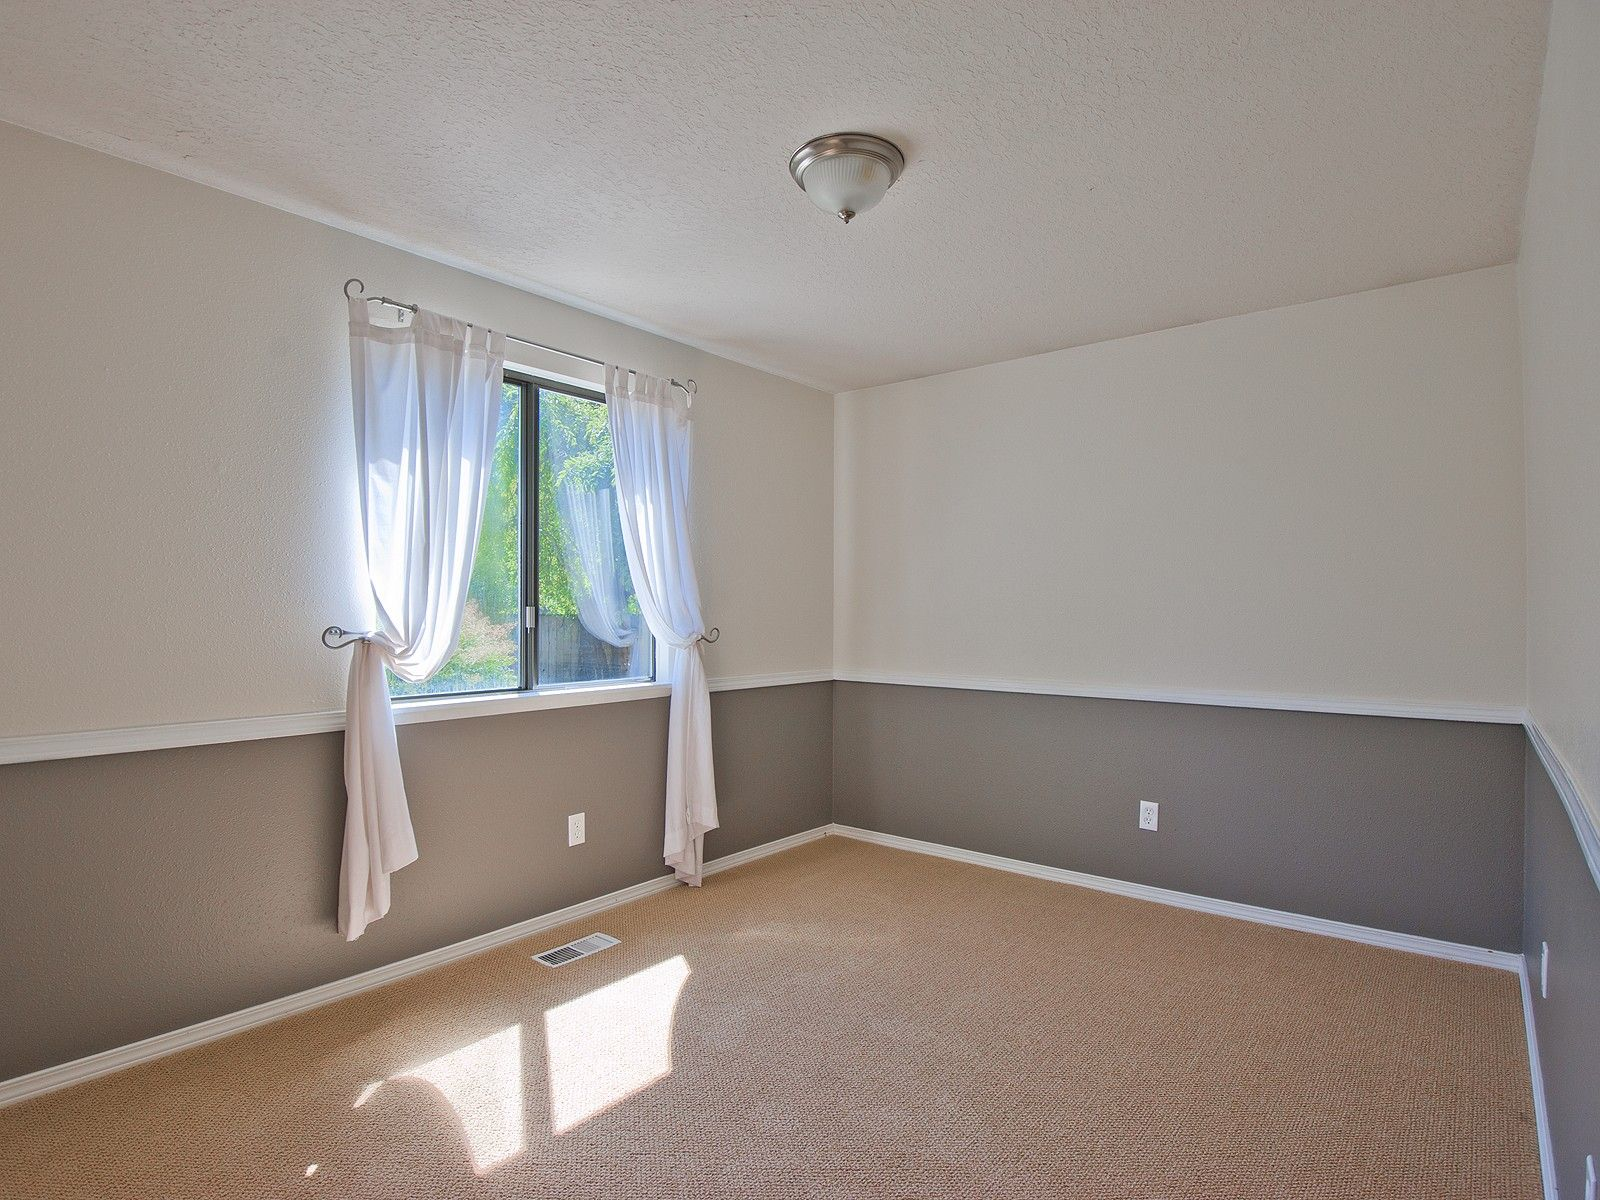 http://www.designbuildpros.com/chair-rail-molding-and ...